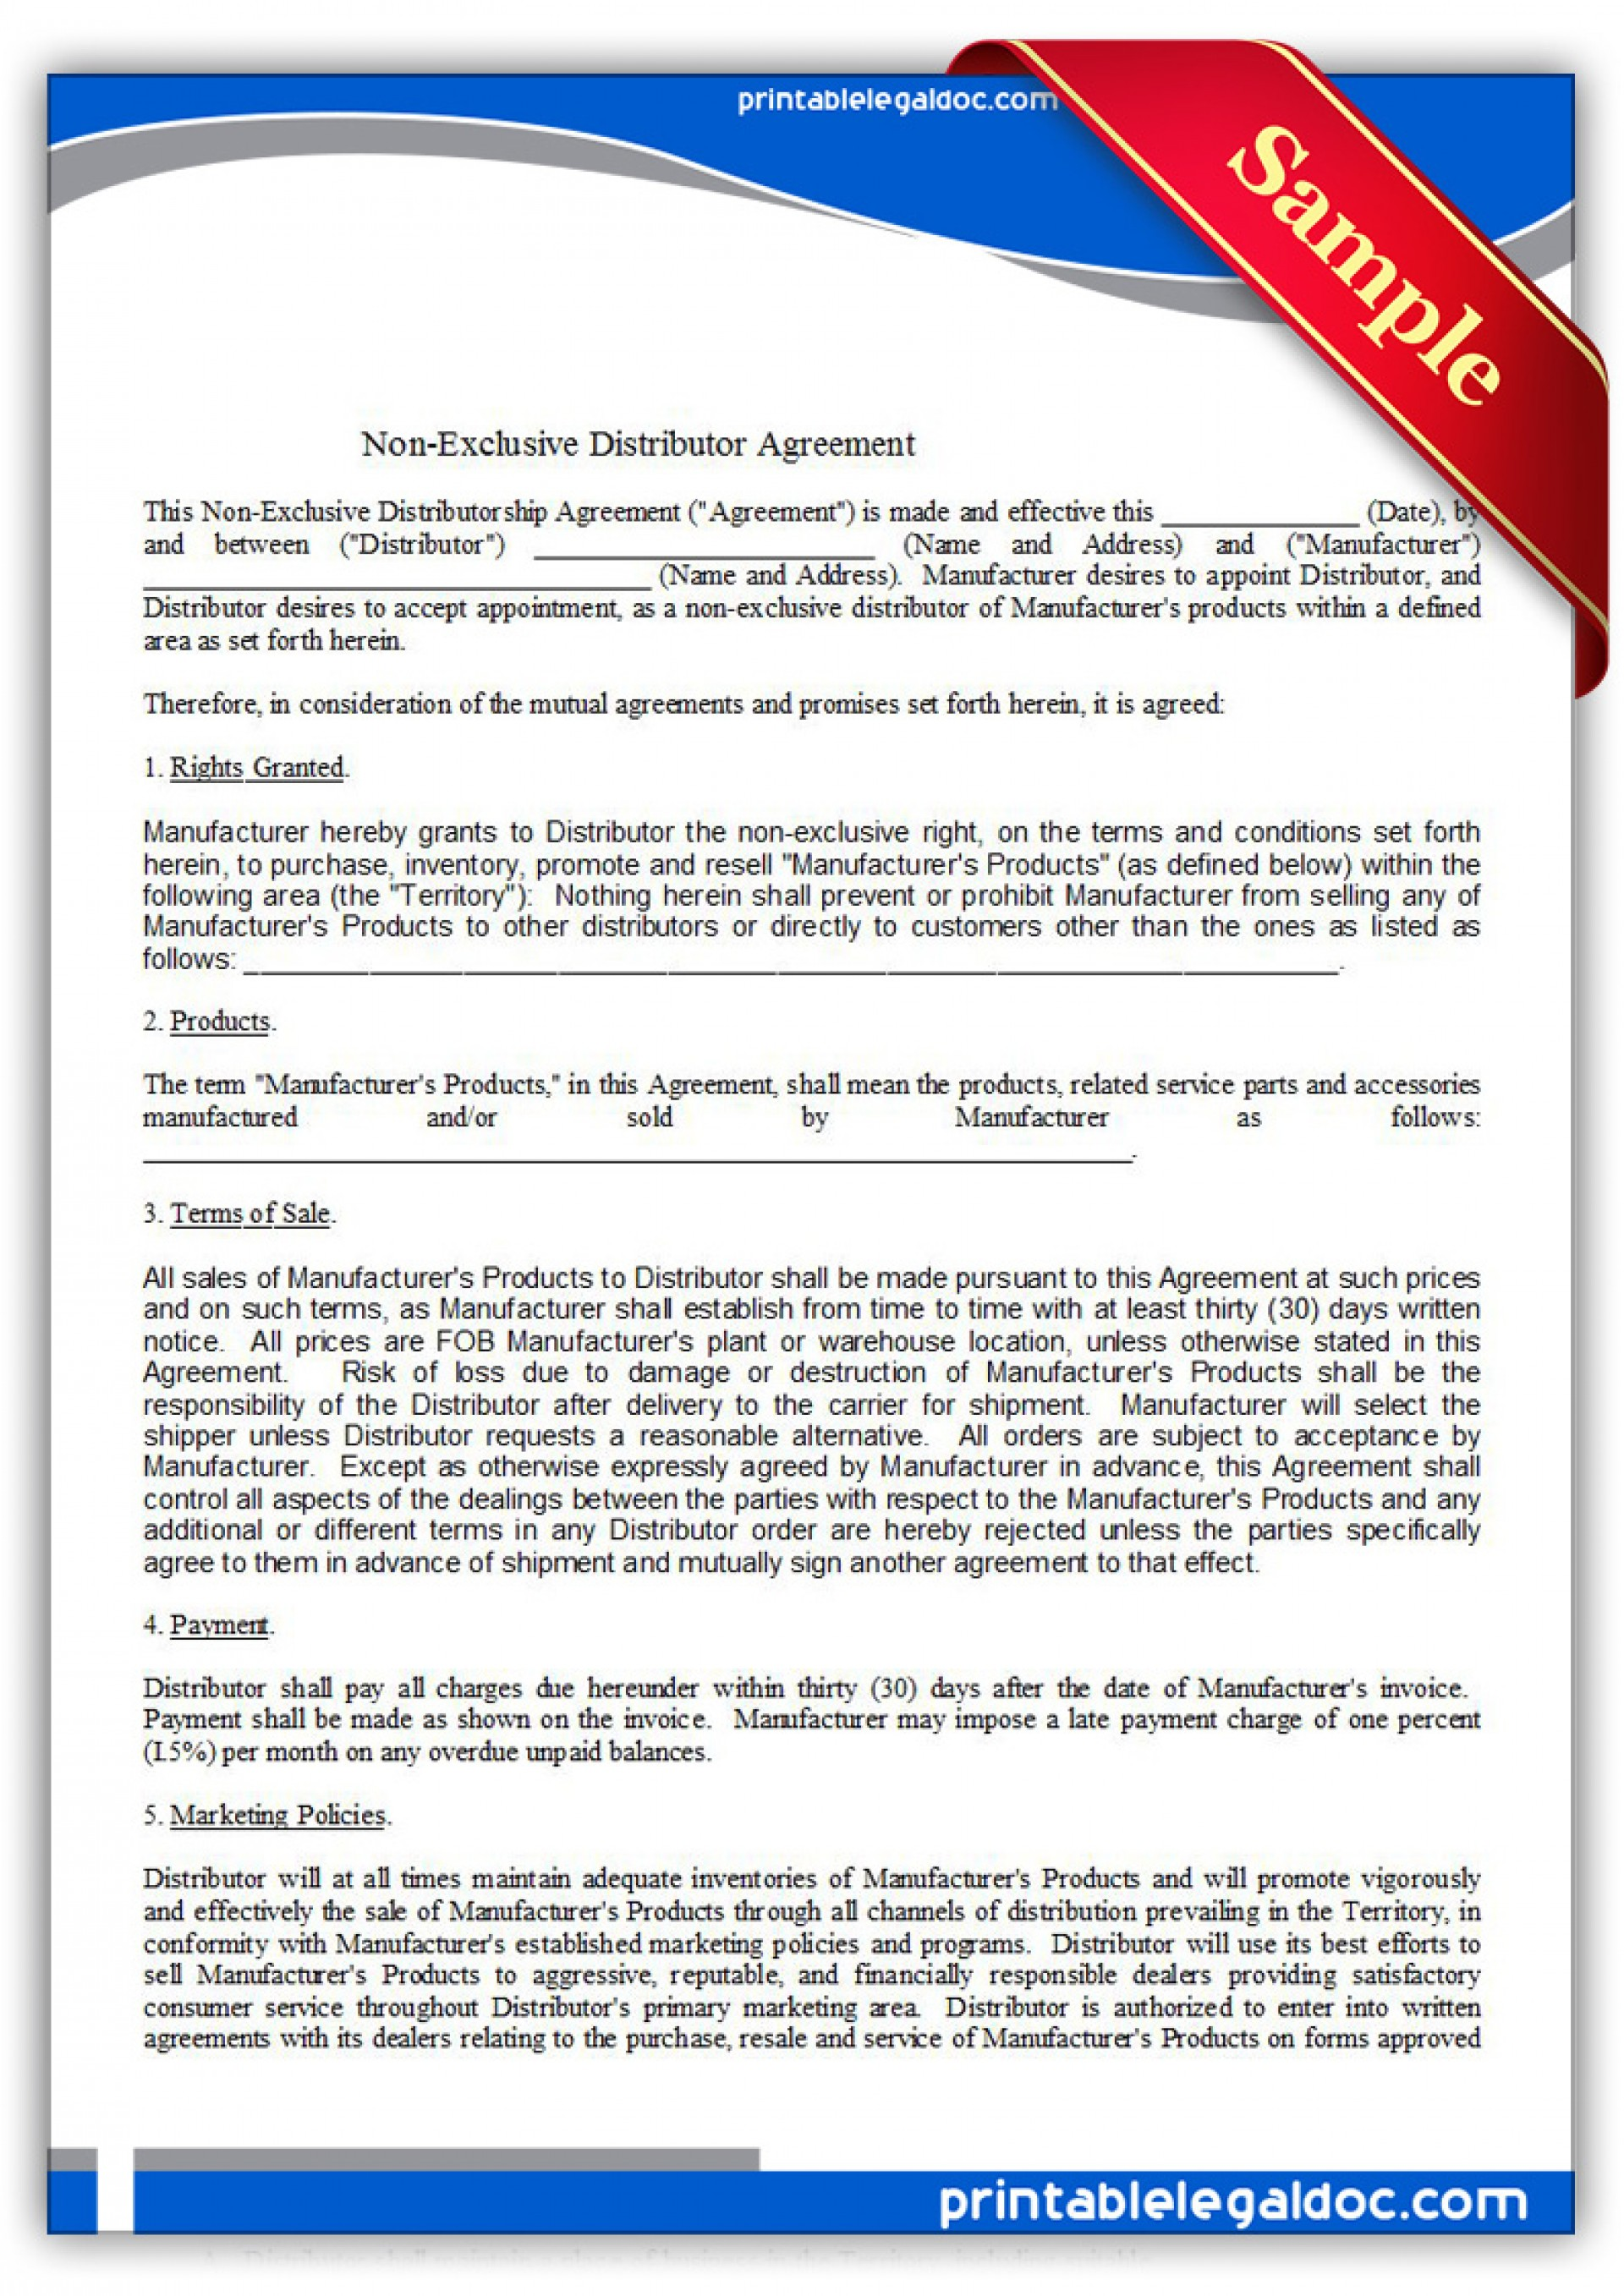 009 Unbelievable Exclusive Distribution Agreement Template Free High Definition  Download Australia Non1920